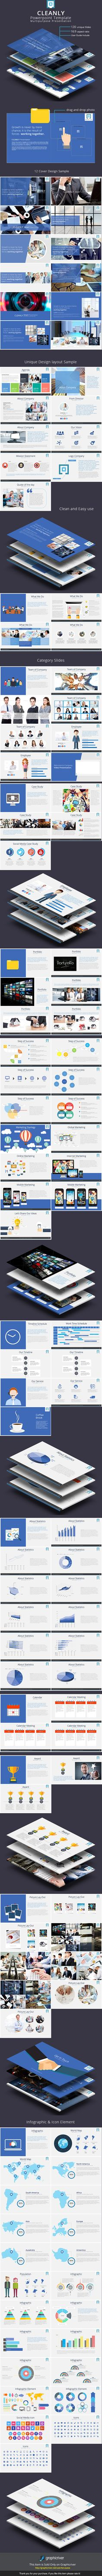 Cleanly Powerpoint Template